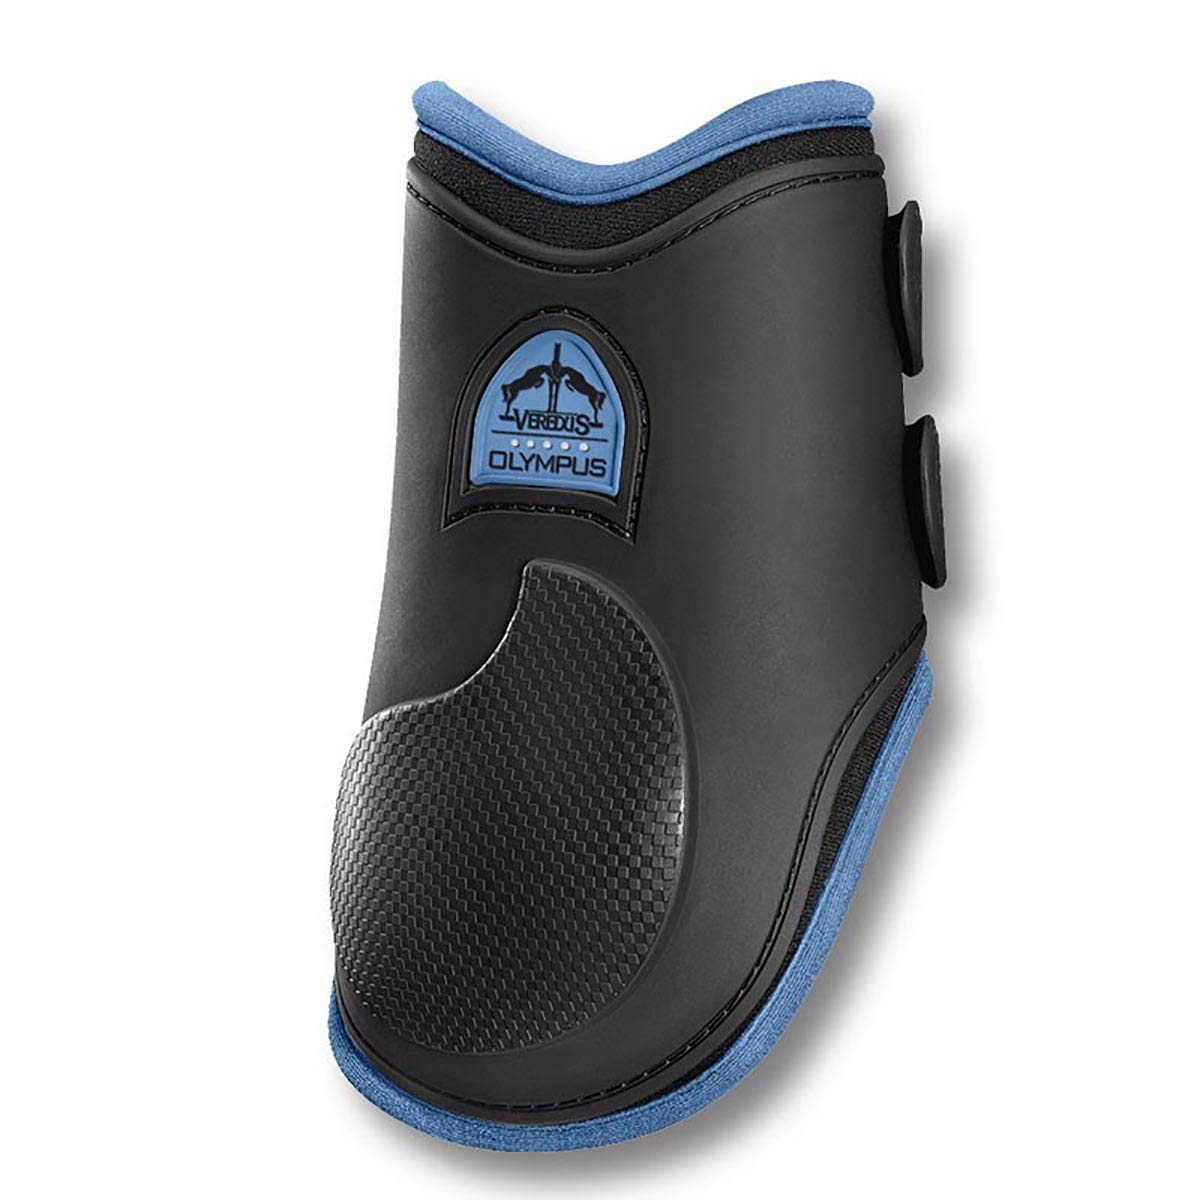 Veredus - Olympus Colored Rear Fetlock - Horse Boots - Made in Italy - Black and Light Blu